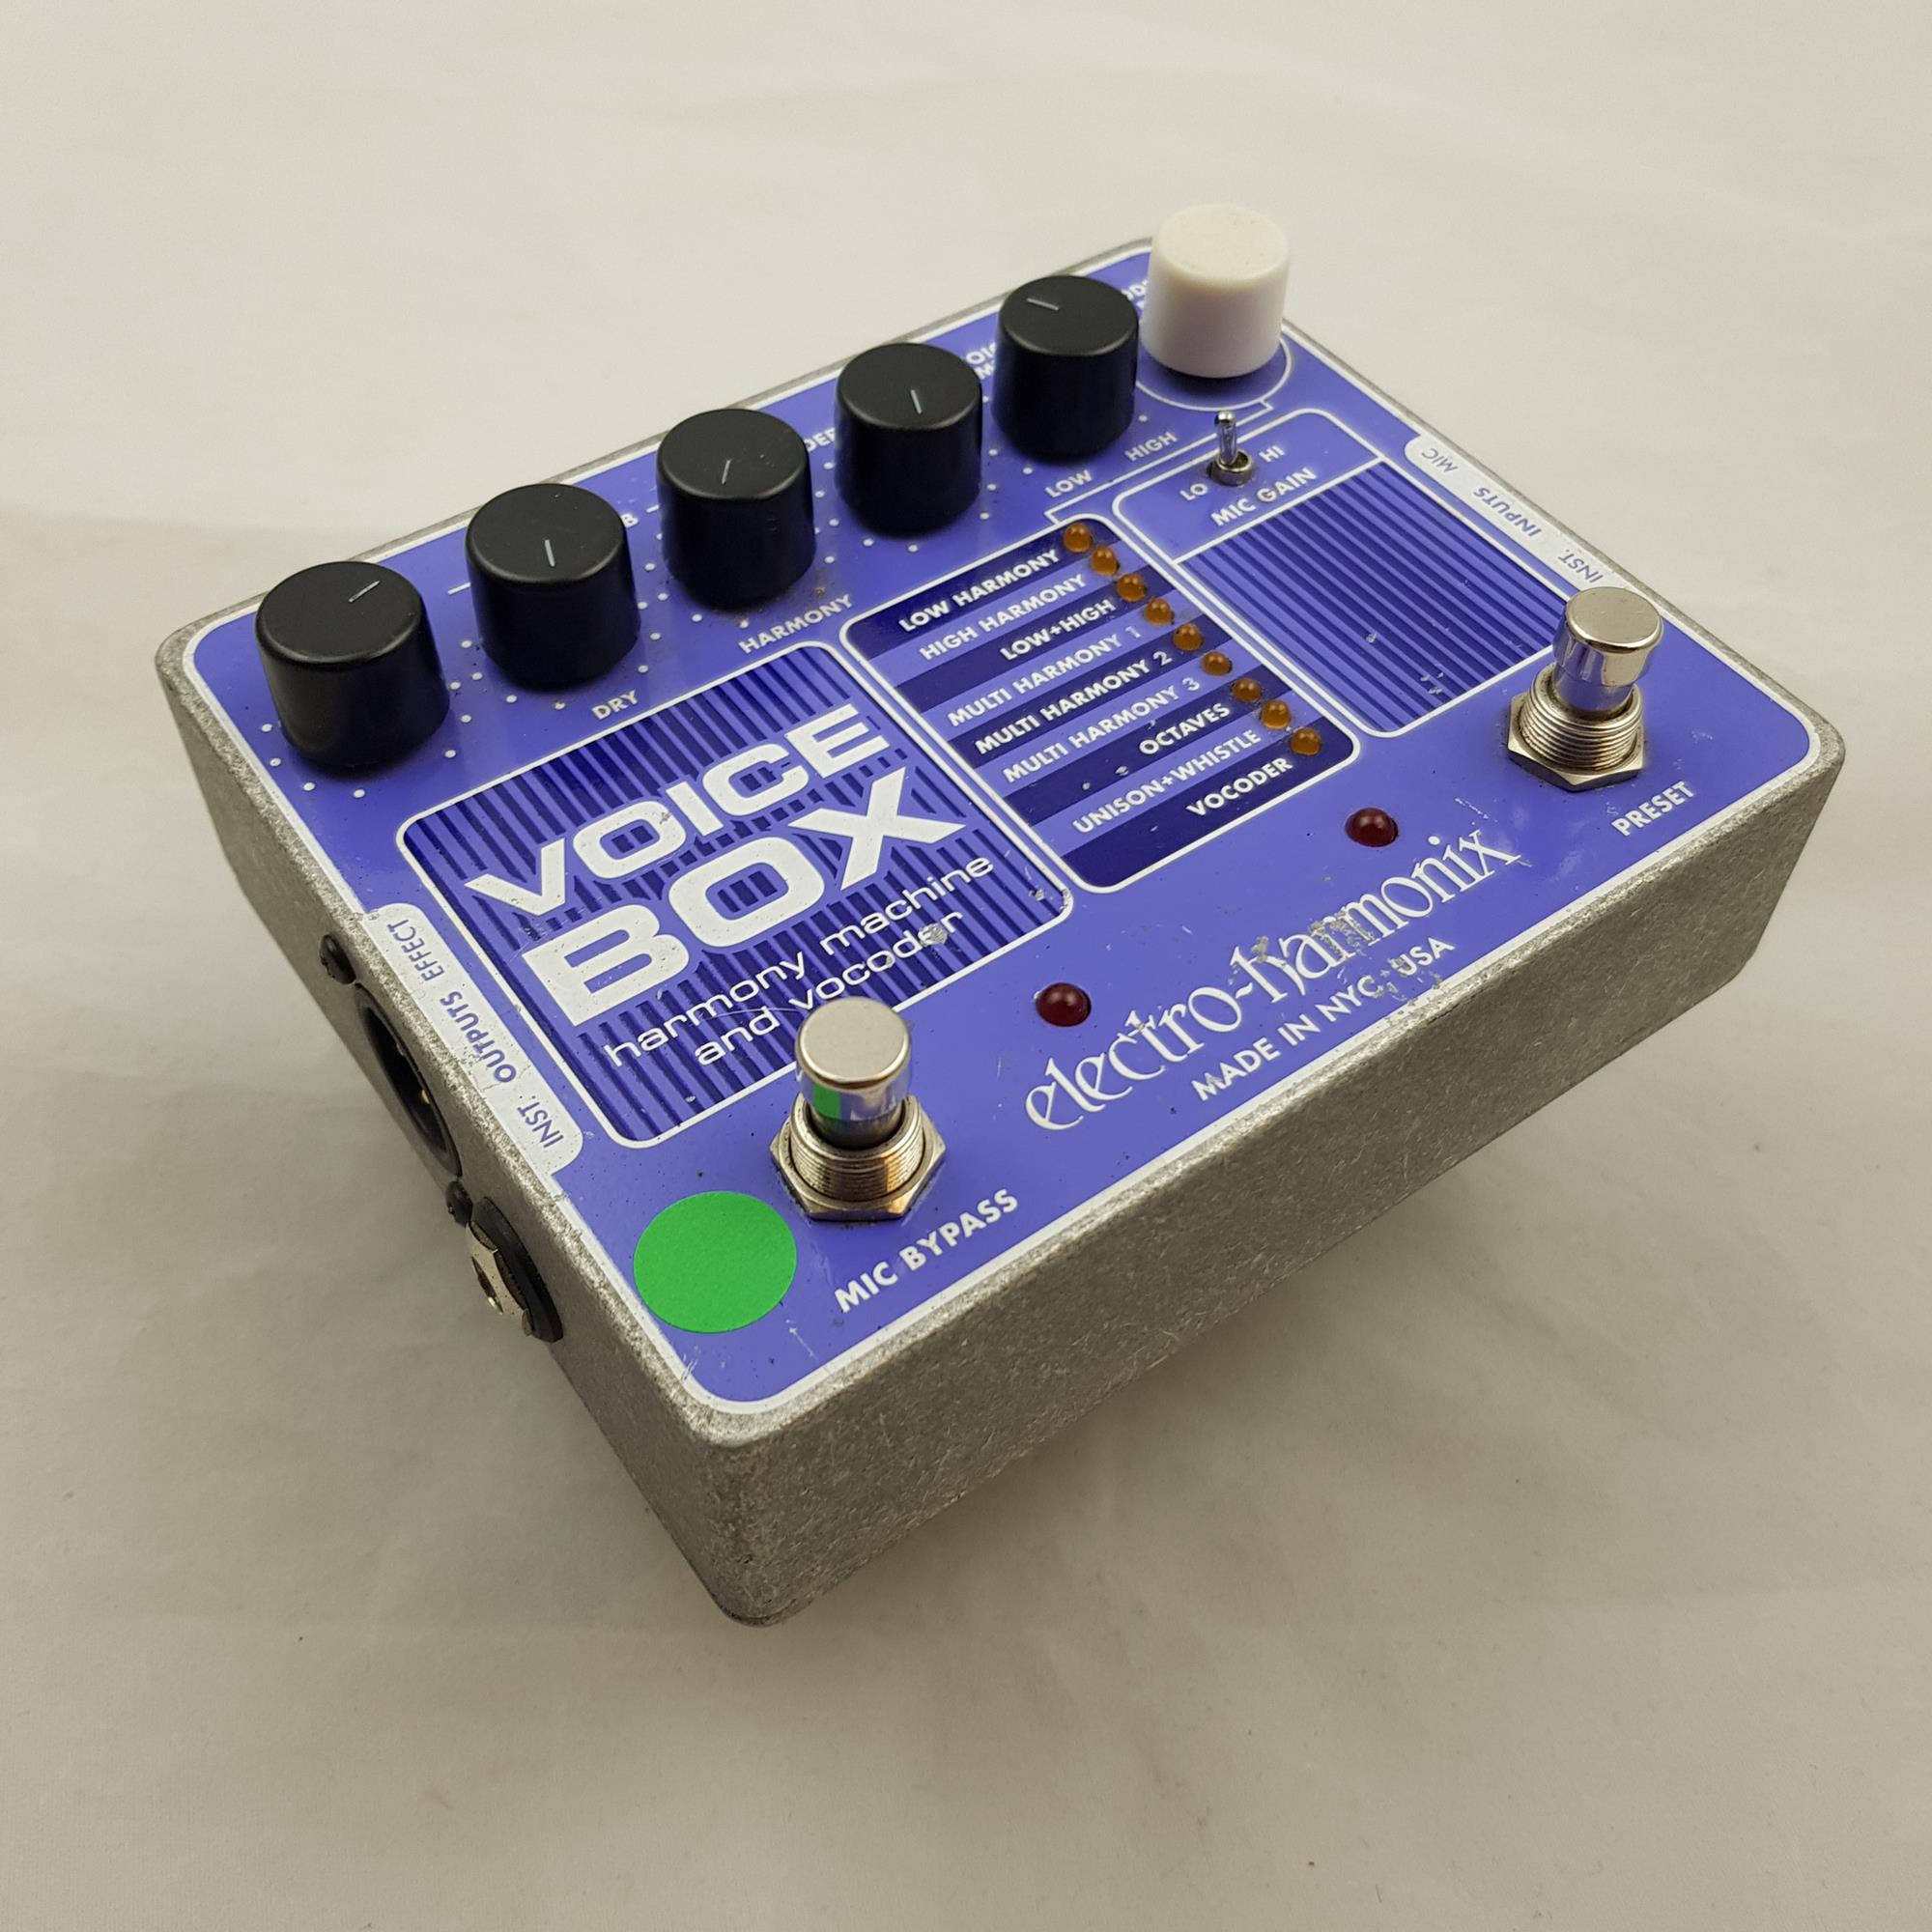 ELECTRO-HARMONIX-VOICE-BOX-sku-1595682728354